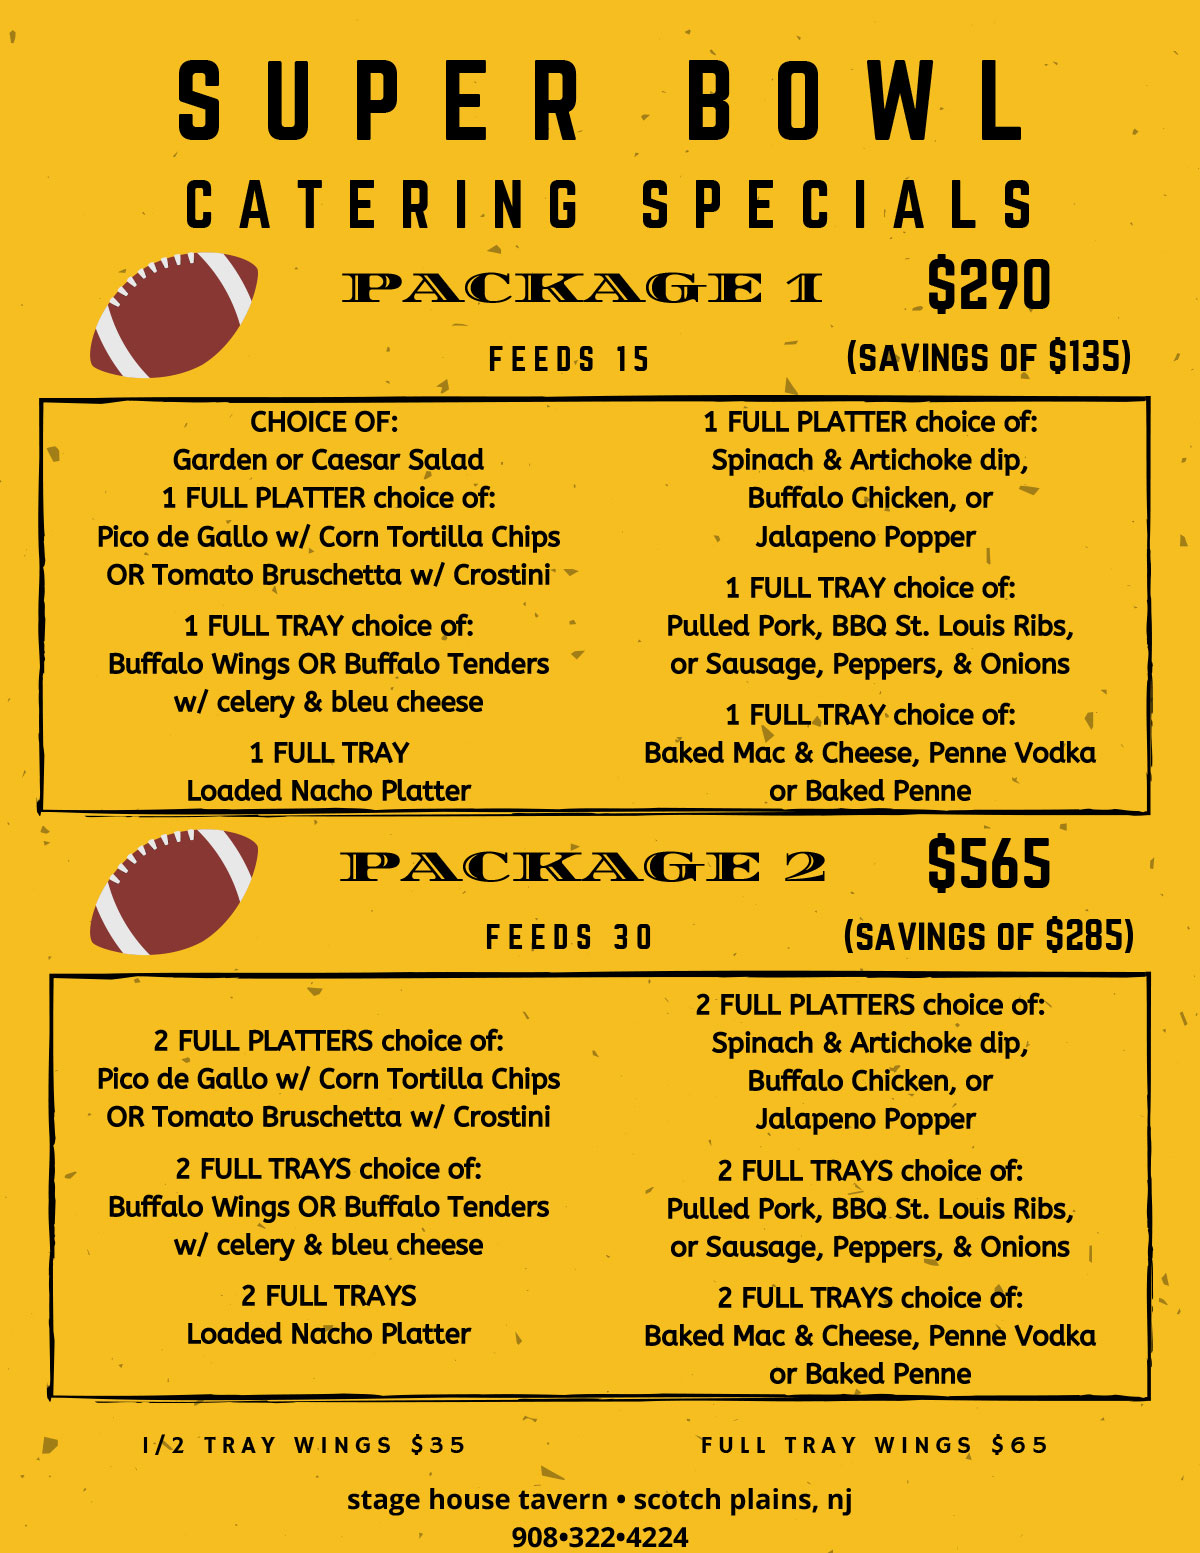 Super Bowl Catering Specials - Stage House Tavern Scotch Plains